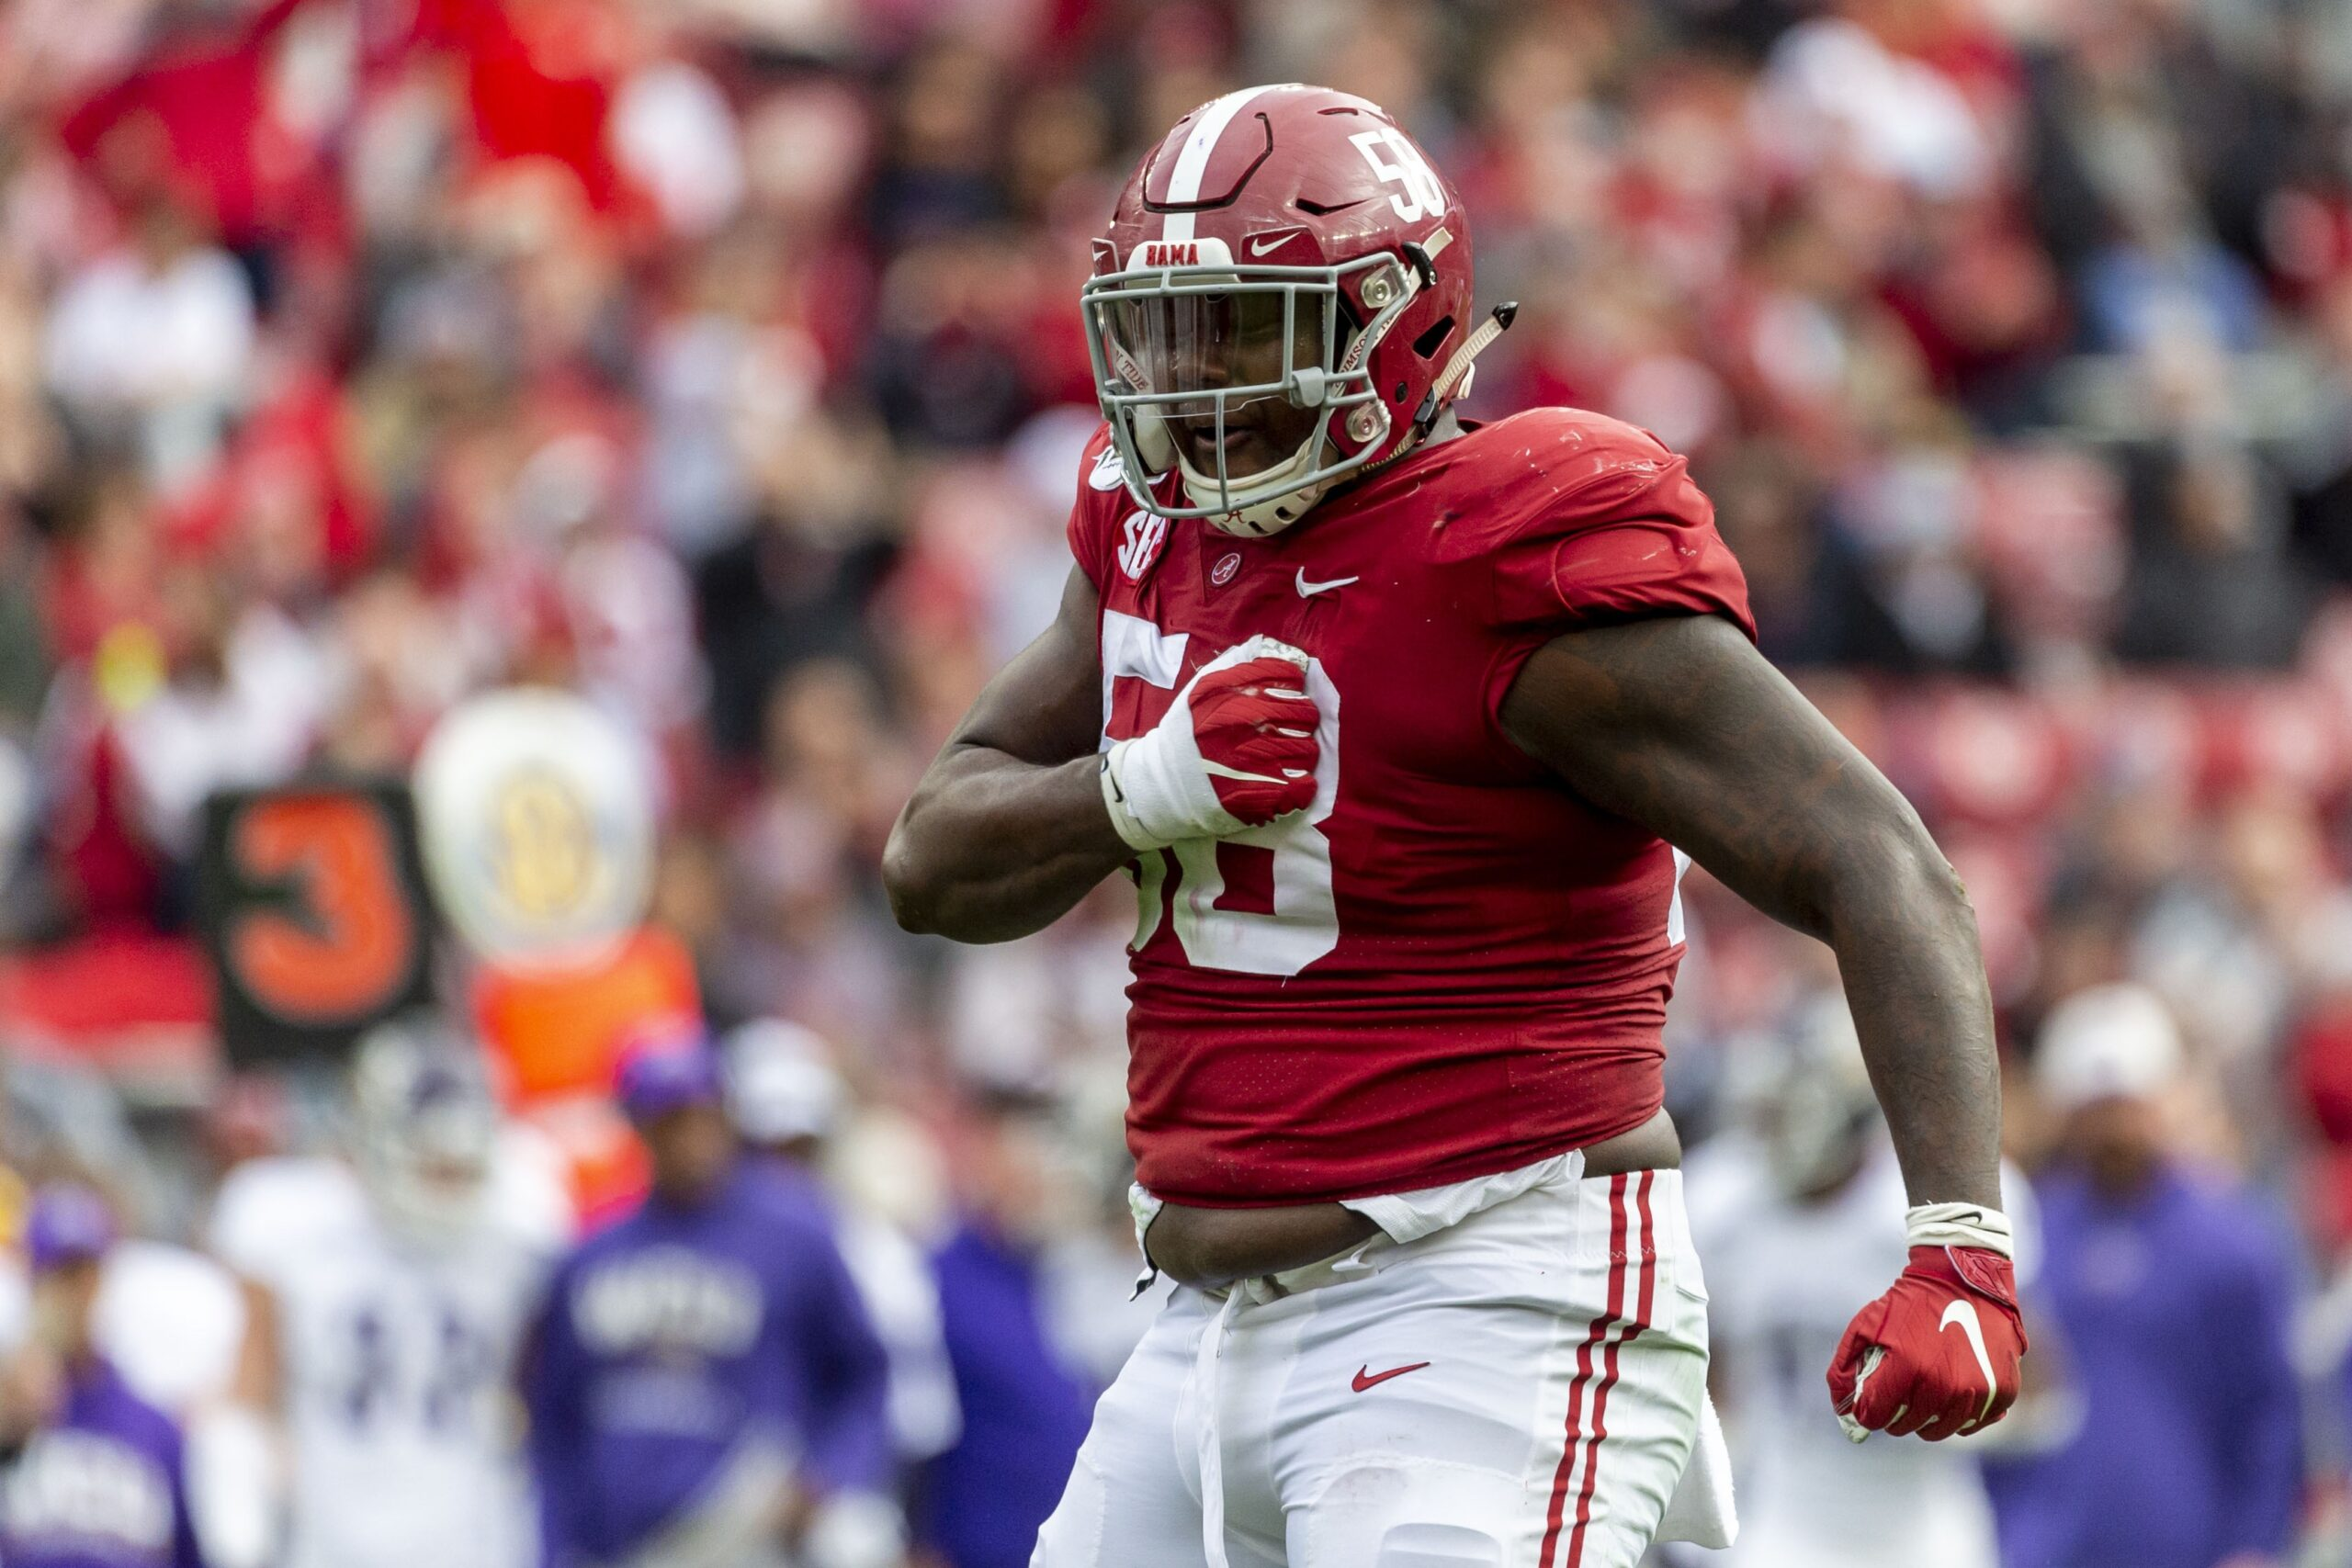 Christian Barmore - NFL Draft Prospect from Alabama